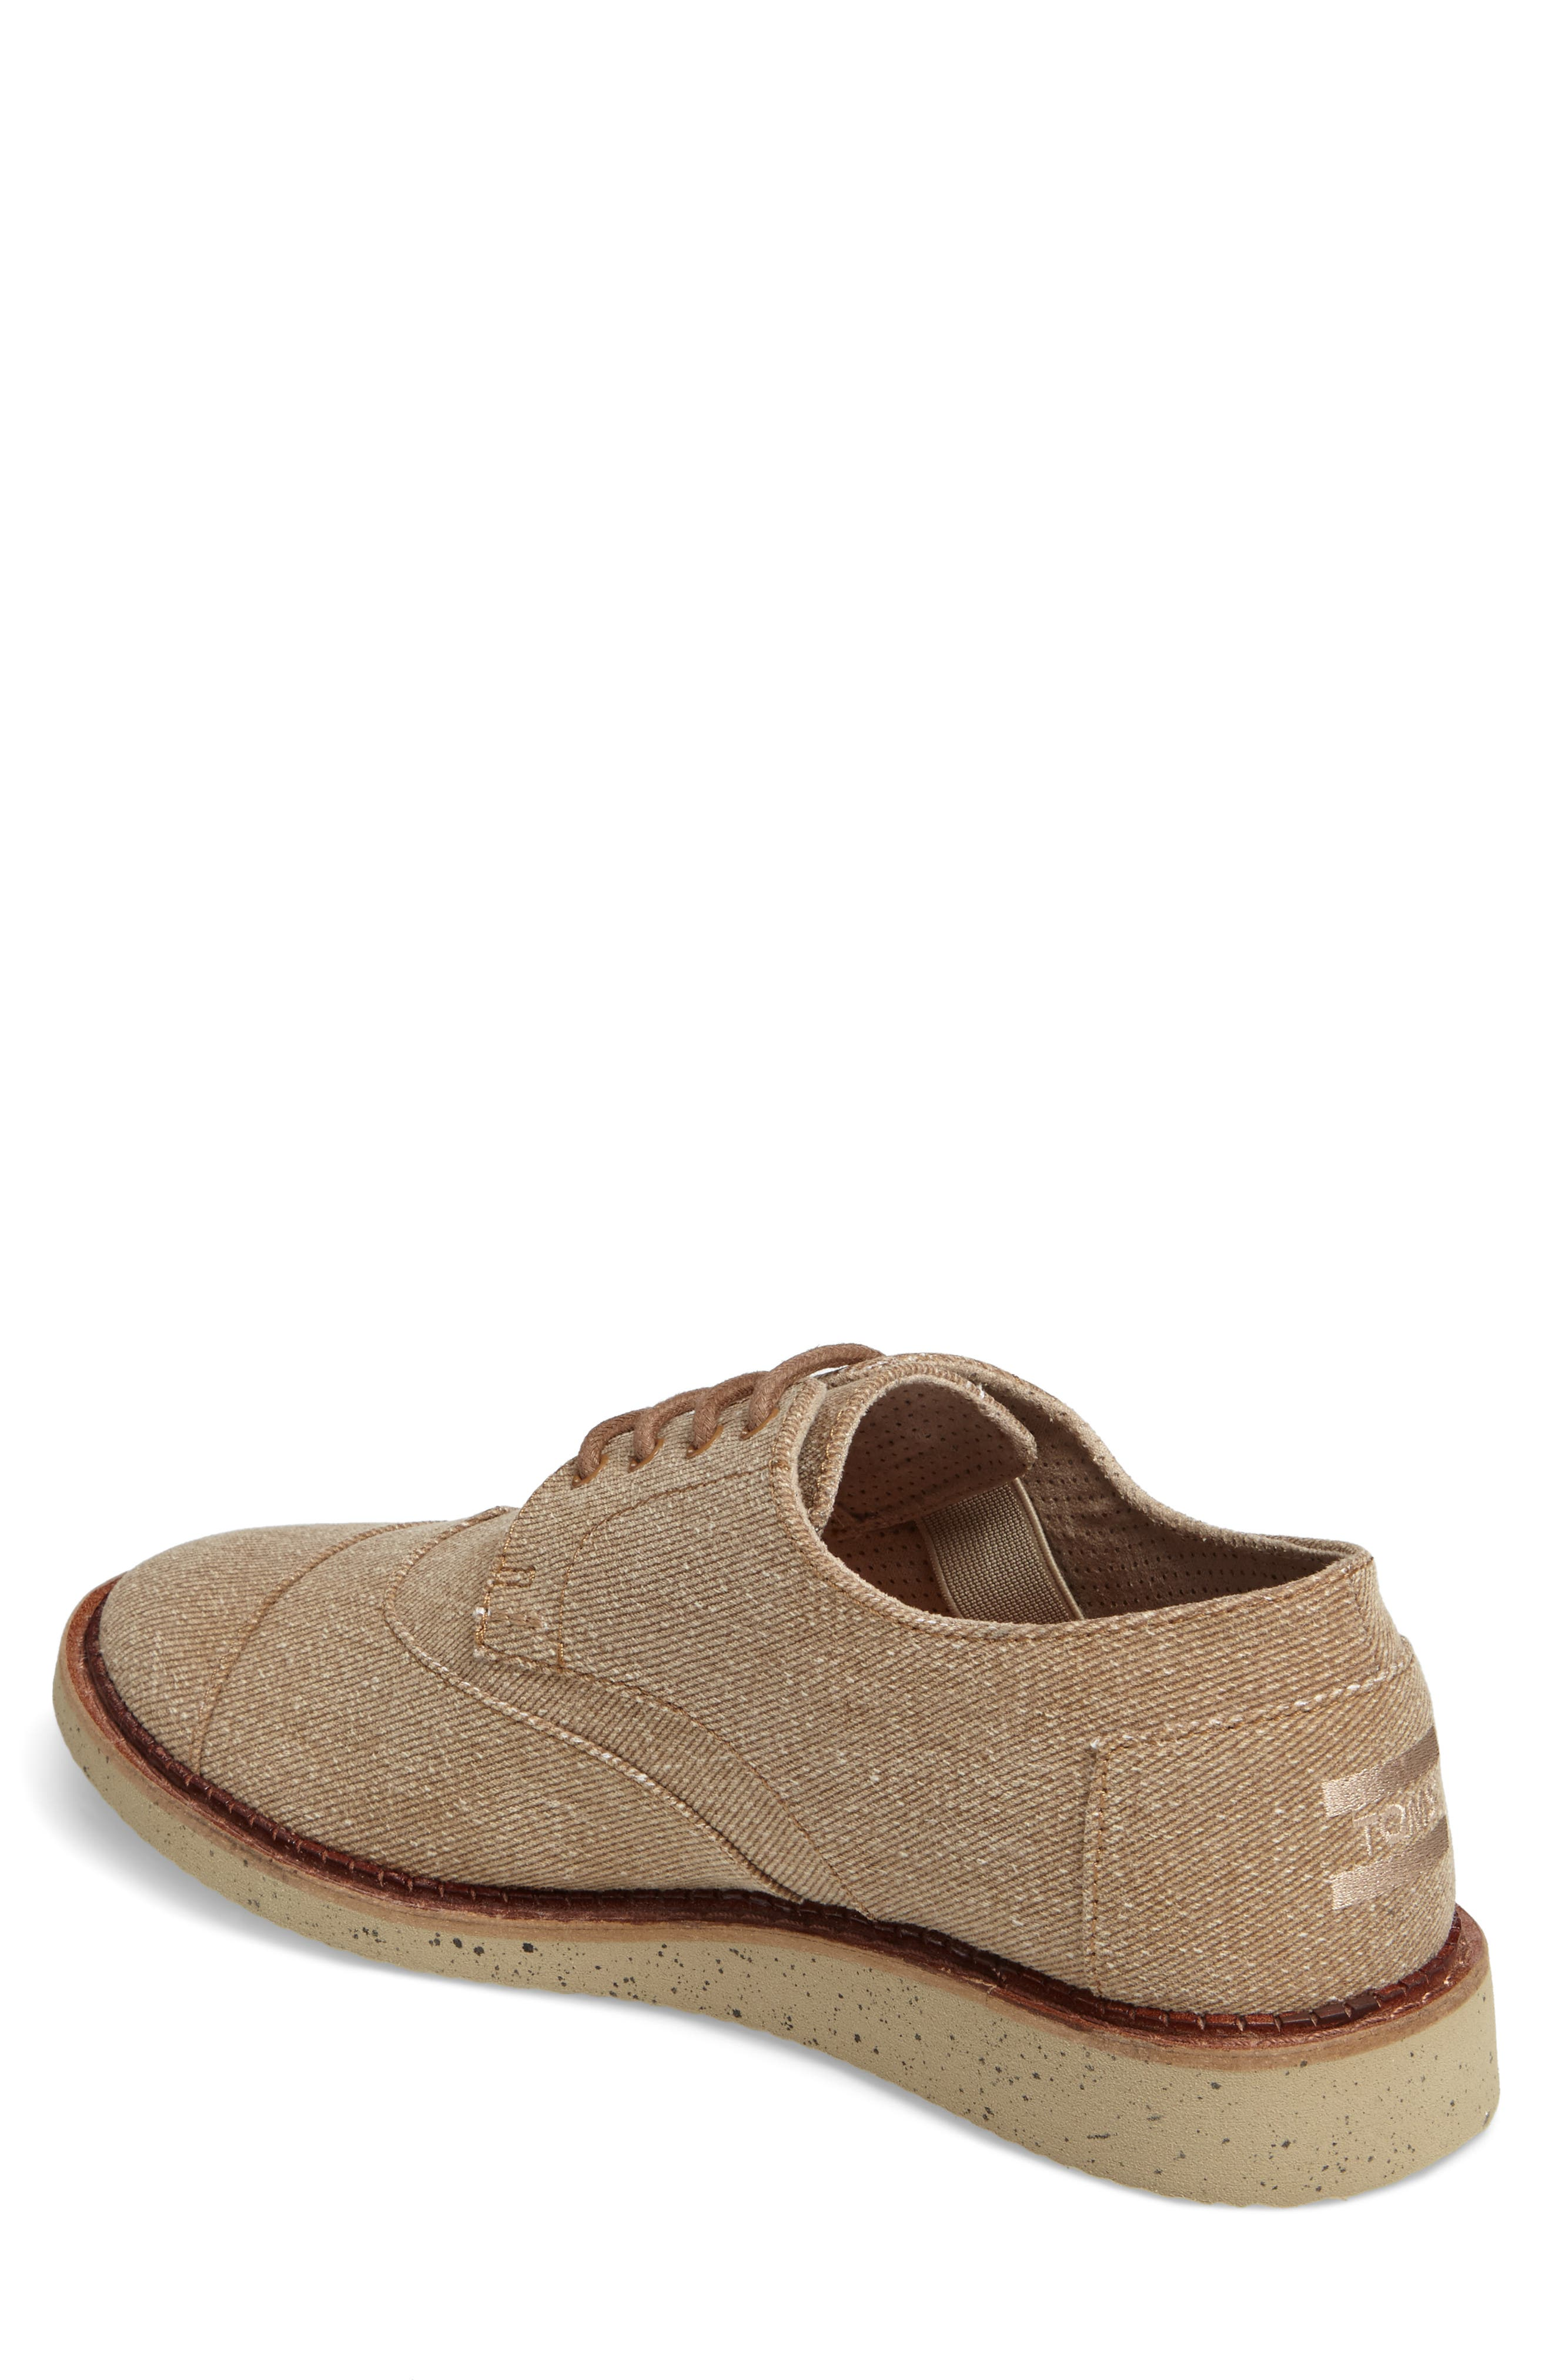 'Classic Brogue' Cotton Twill Derby,                             Alternate thumbnail 26, color,